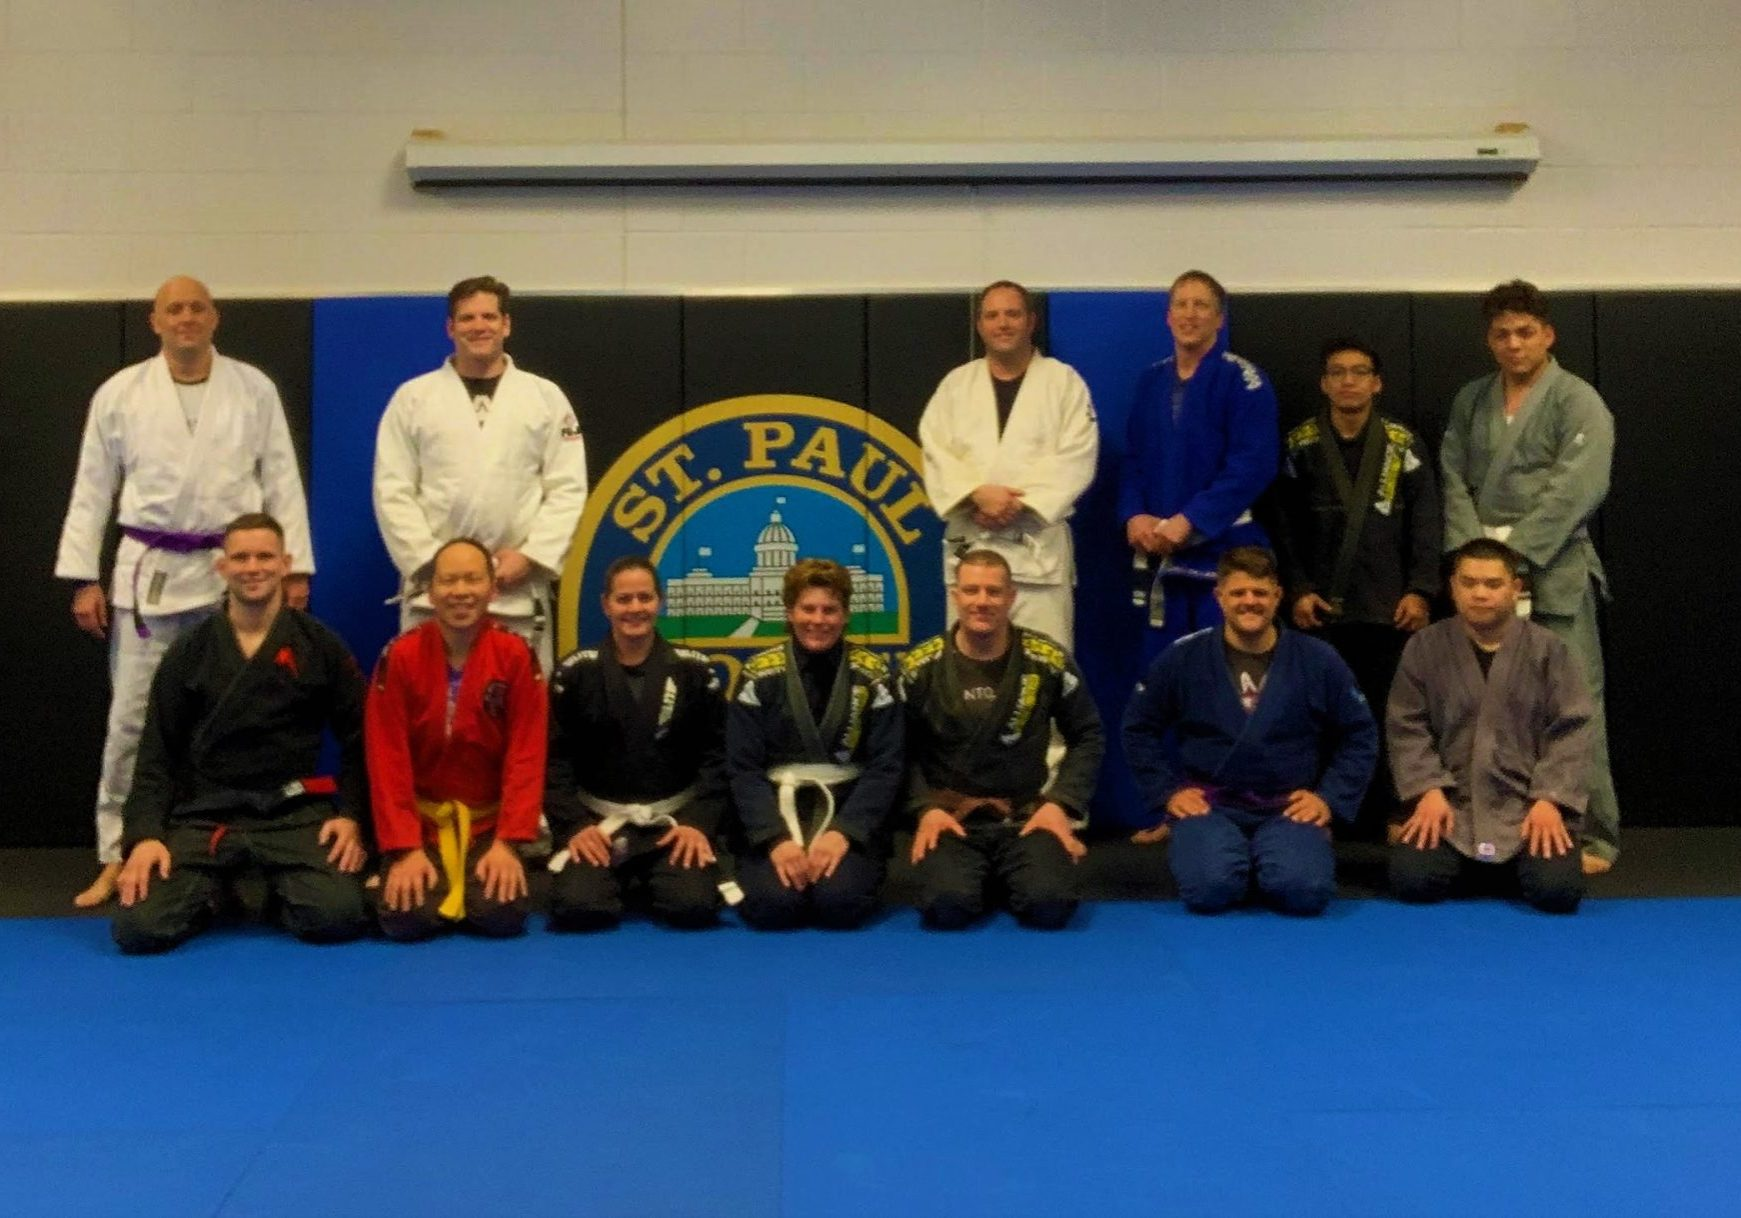 SPPD-Grappling Club, edited